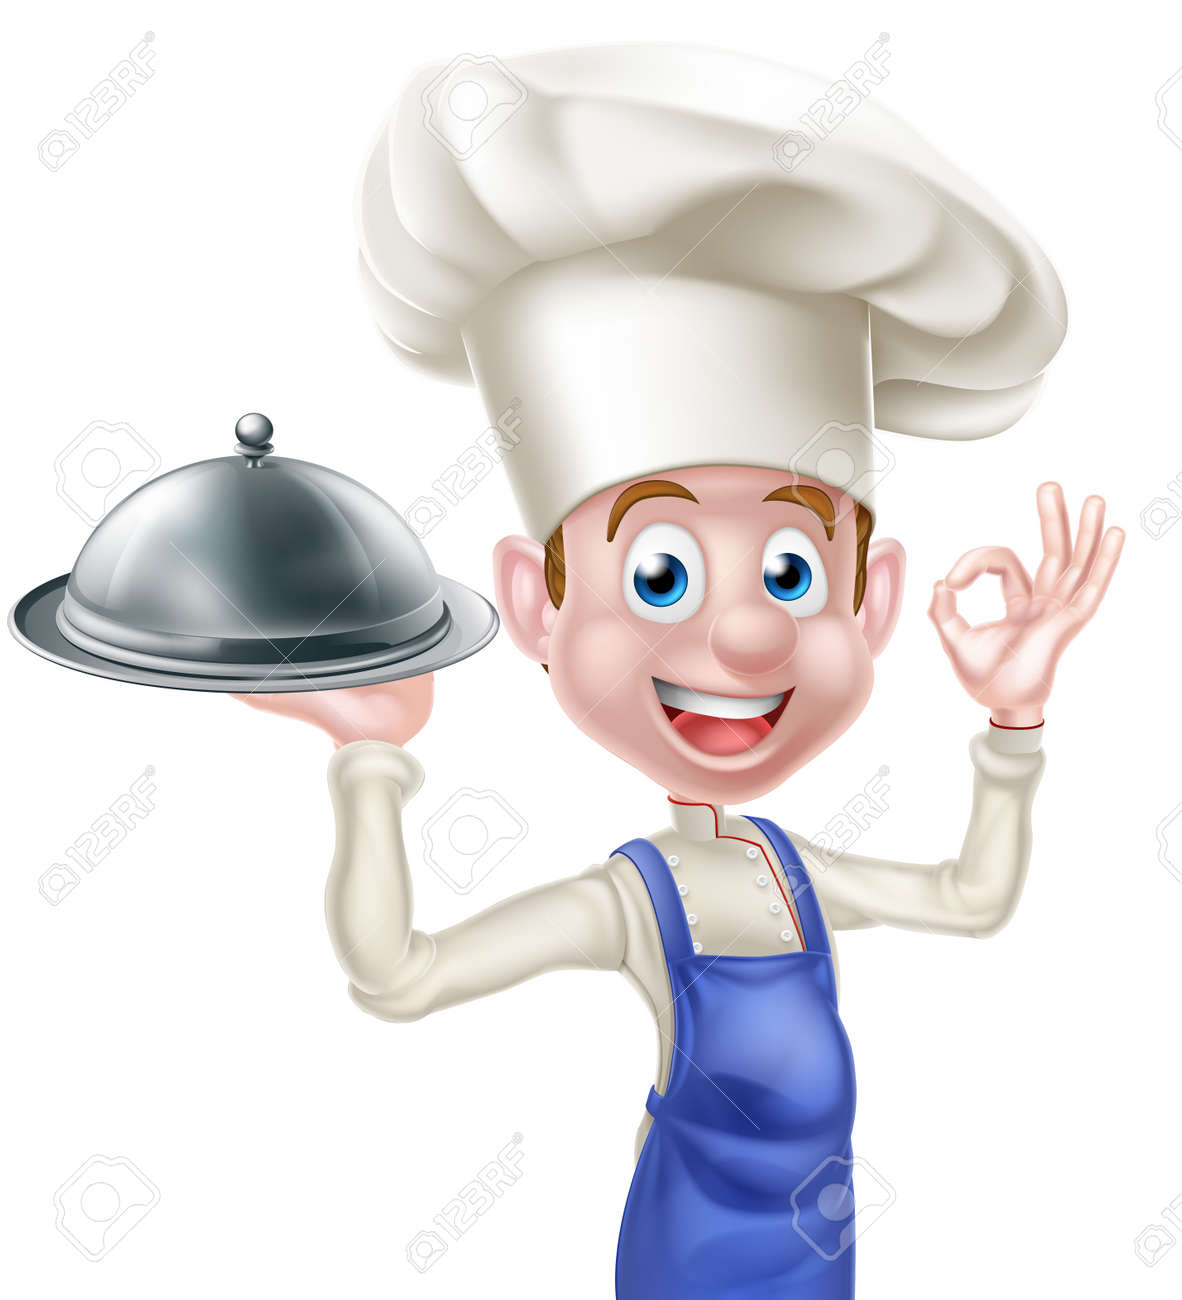 a cartoon happy chef character holding a platter or cloche and